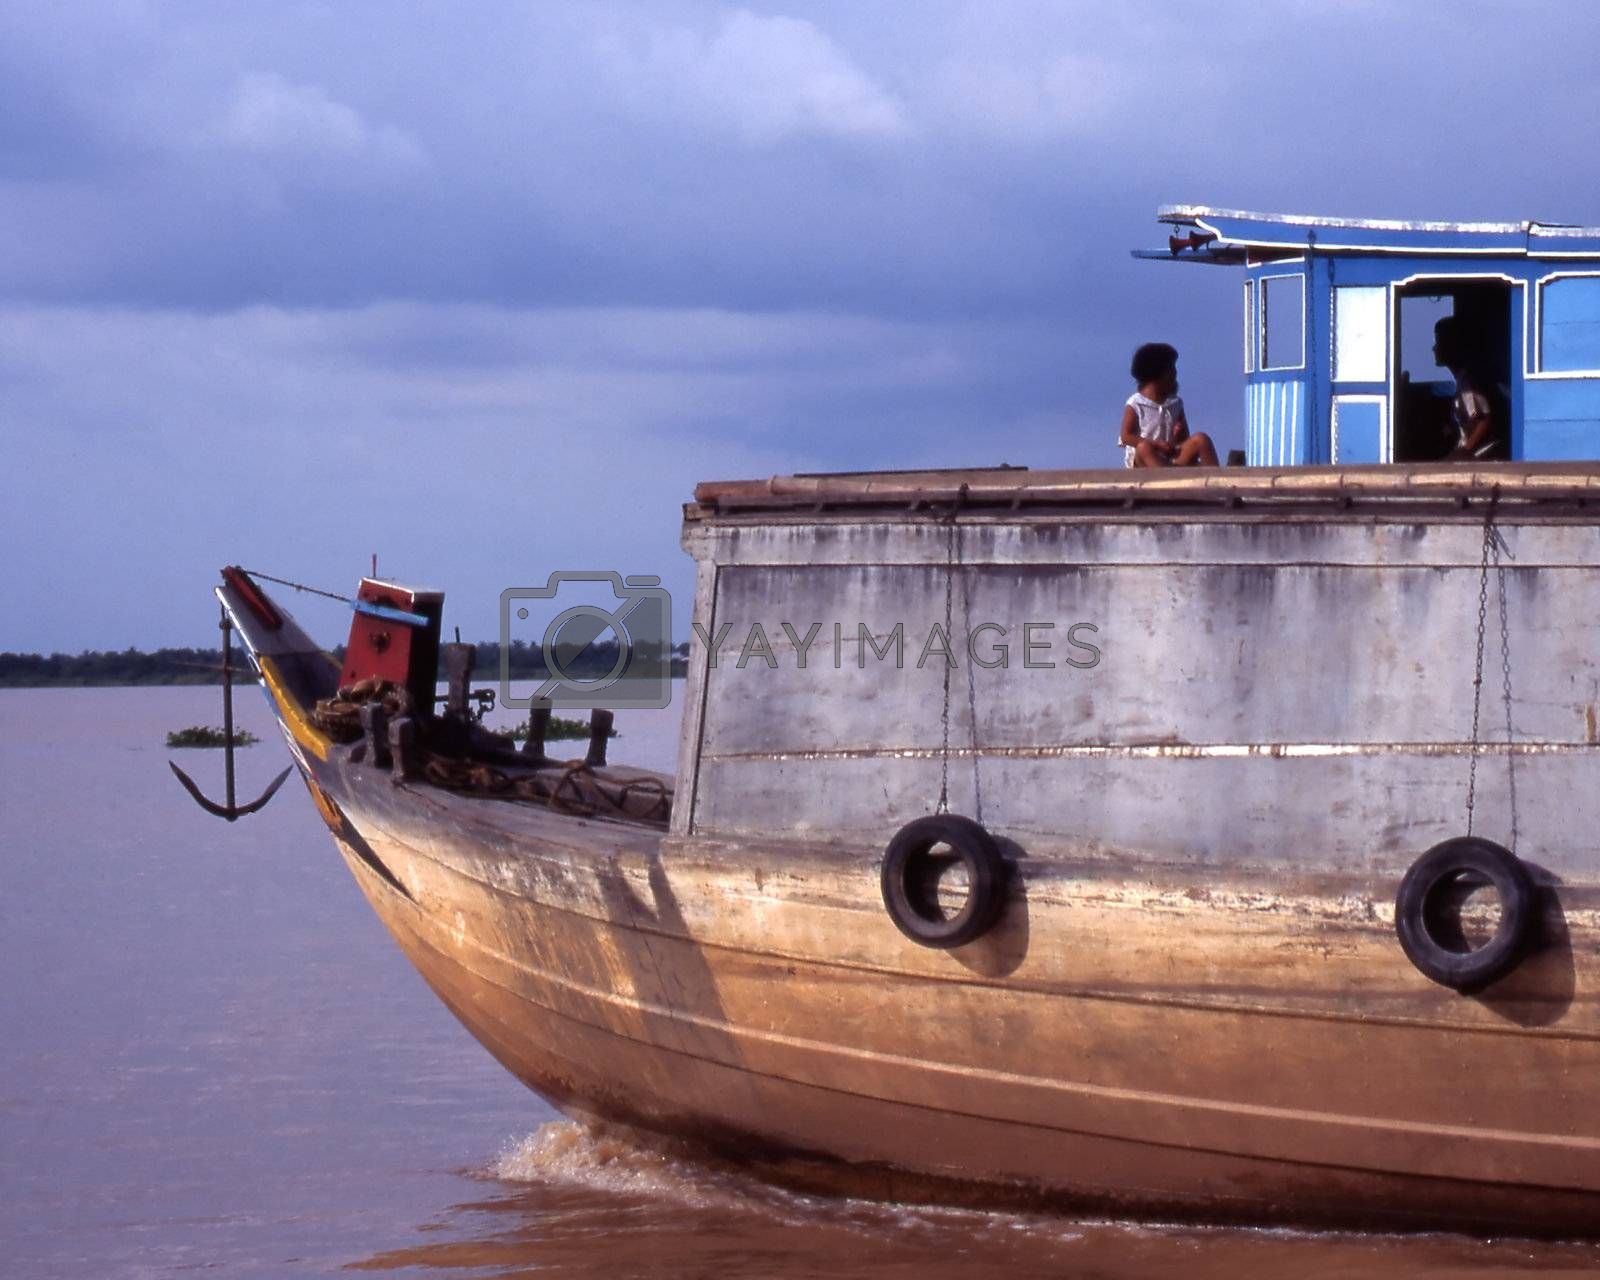 Child sits on roof of wooden house boat. Moving on the Mekong river while in flood.